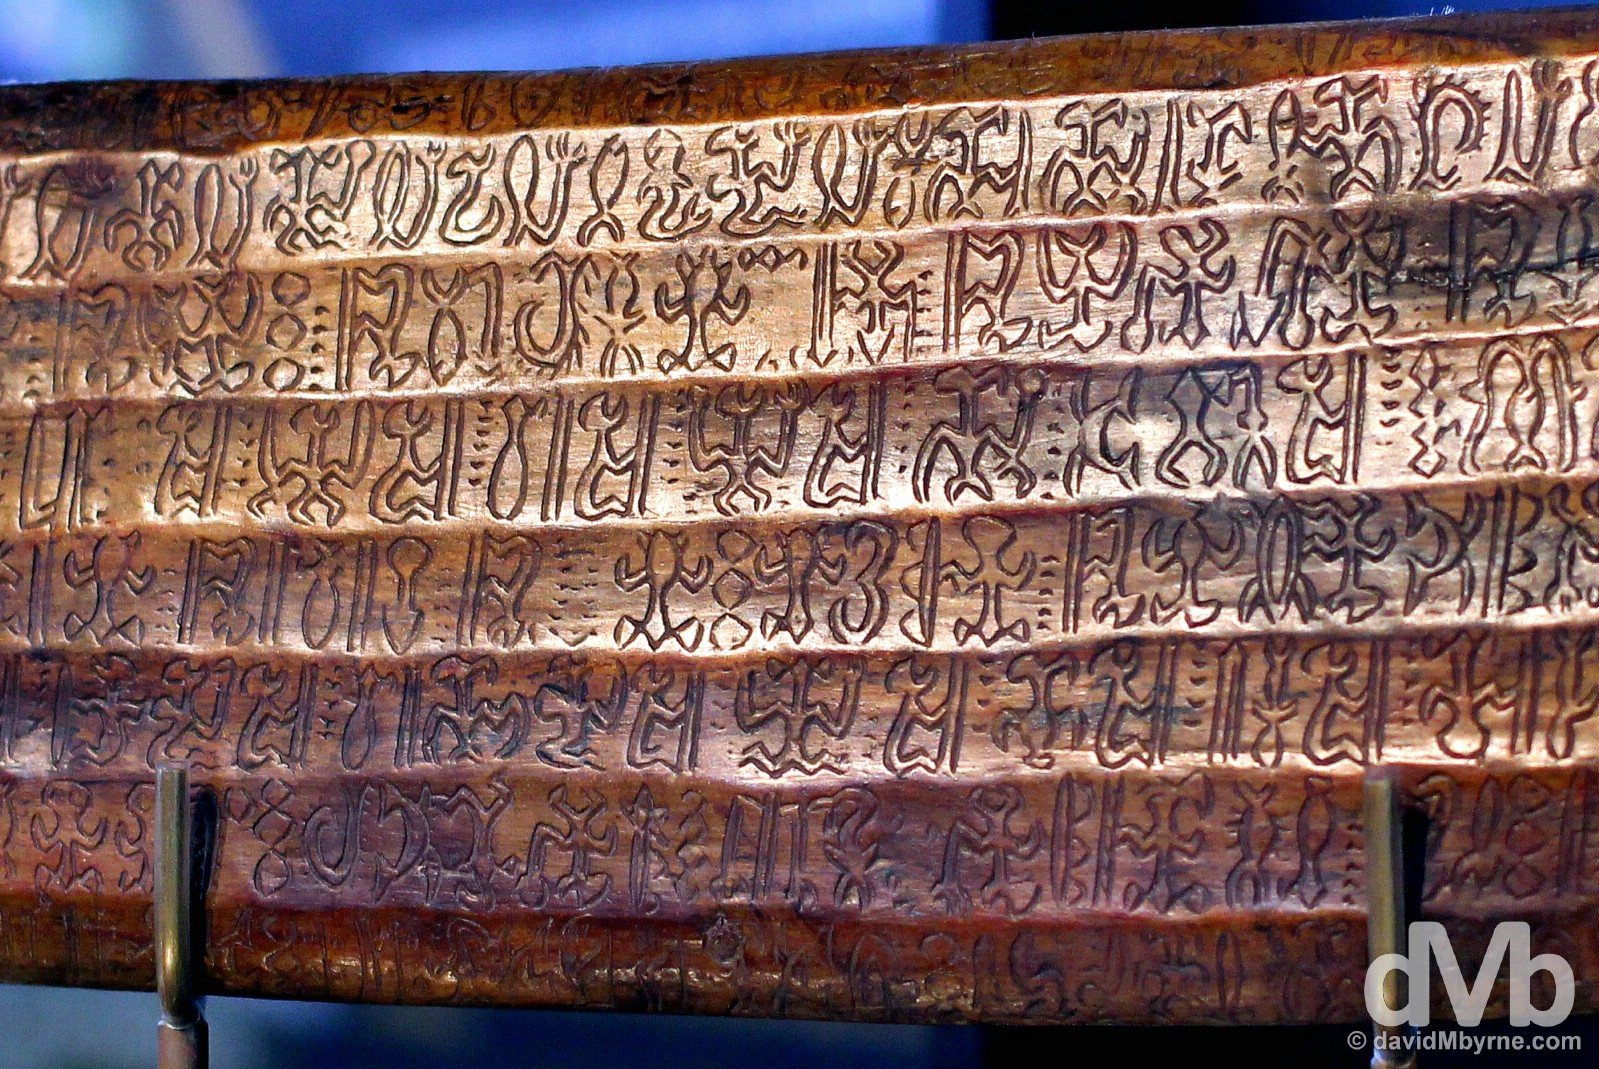 A Rongorongo tablet on display in the Museo Antropologico P. Sebastian Englert, Easter Island, Chile. September 30, 2015.